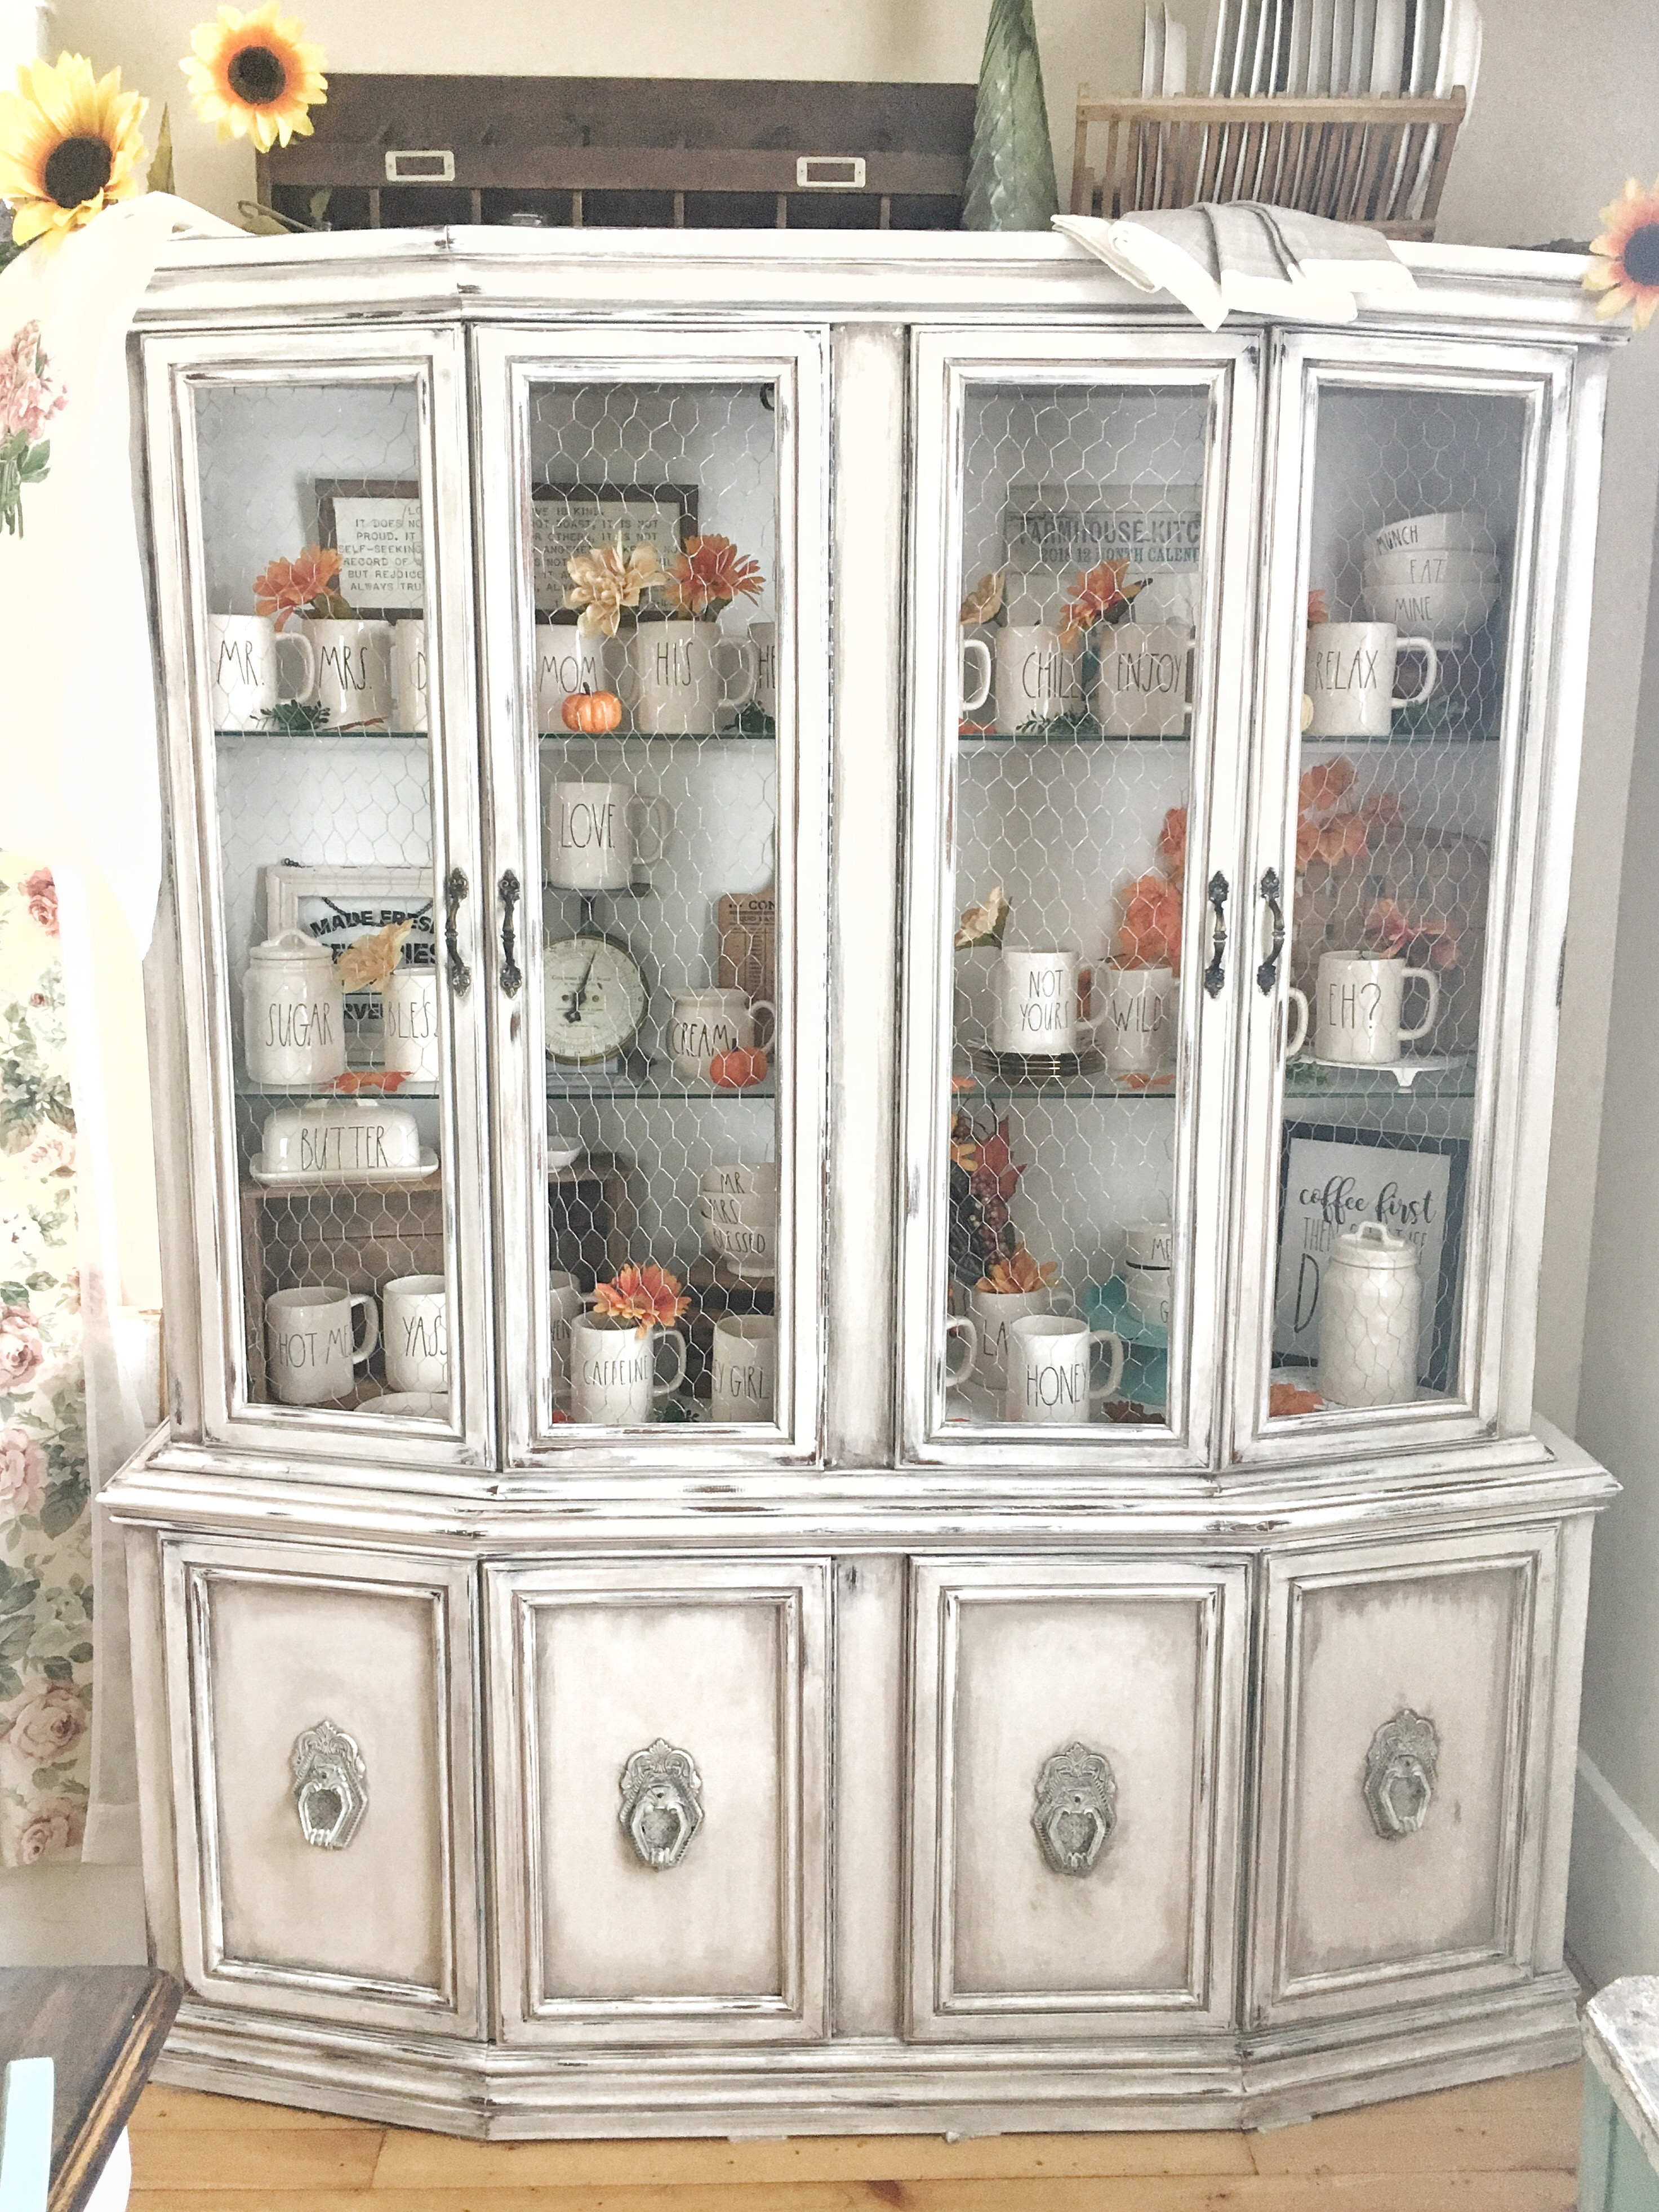 design decor dining amazing china room tips decorate on ideas cabinet cool decorating